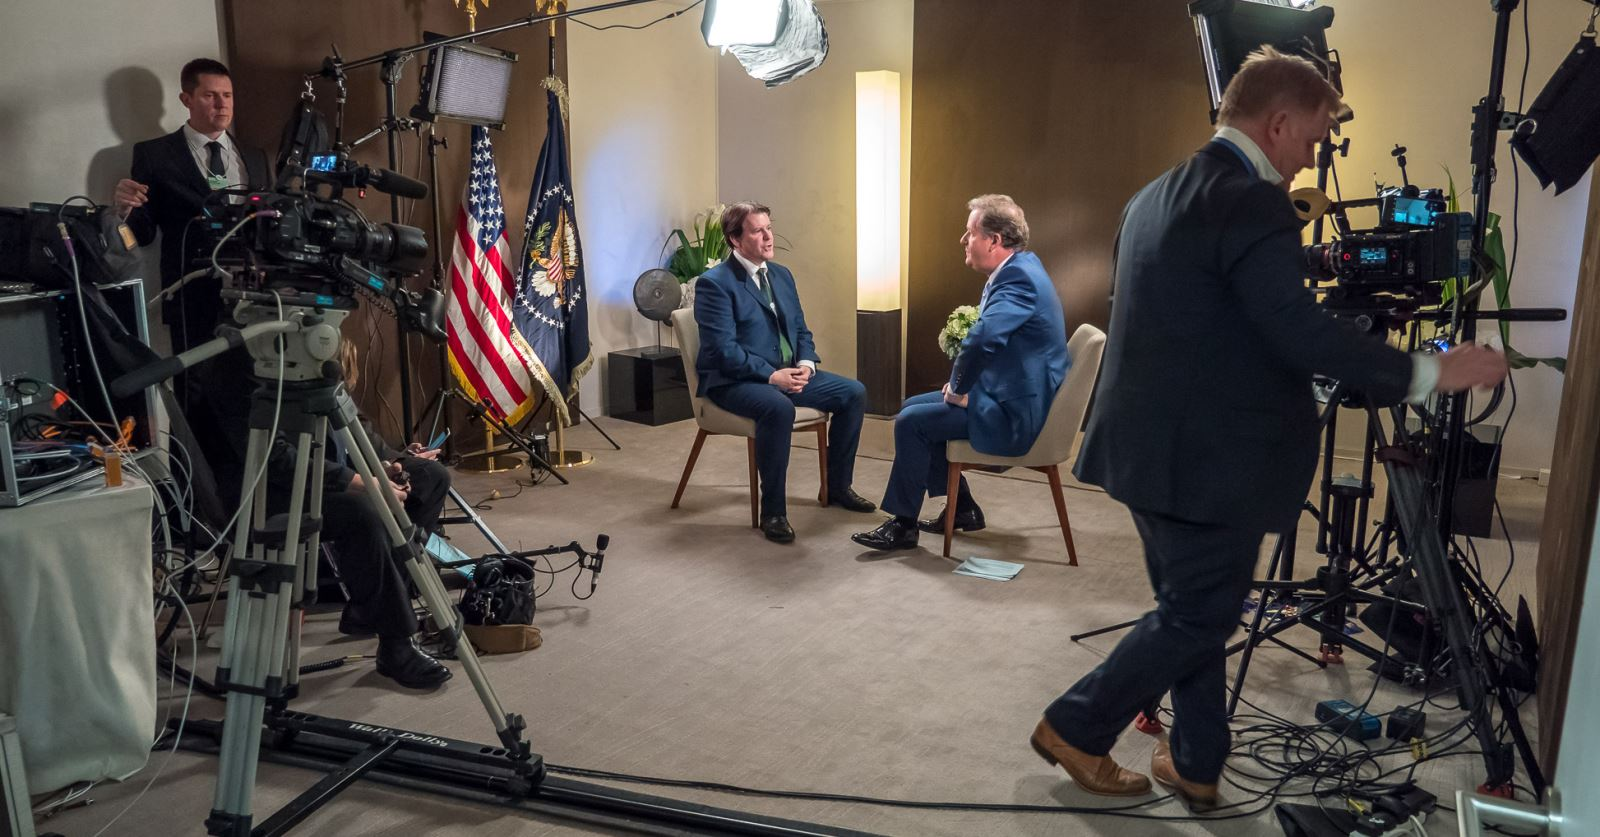 Getting set up for an interview with Donald Trump – Ed Matthews (l) and GTC member Geraint Warrington (r)